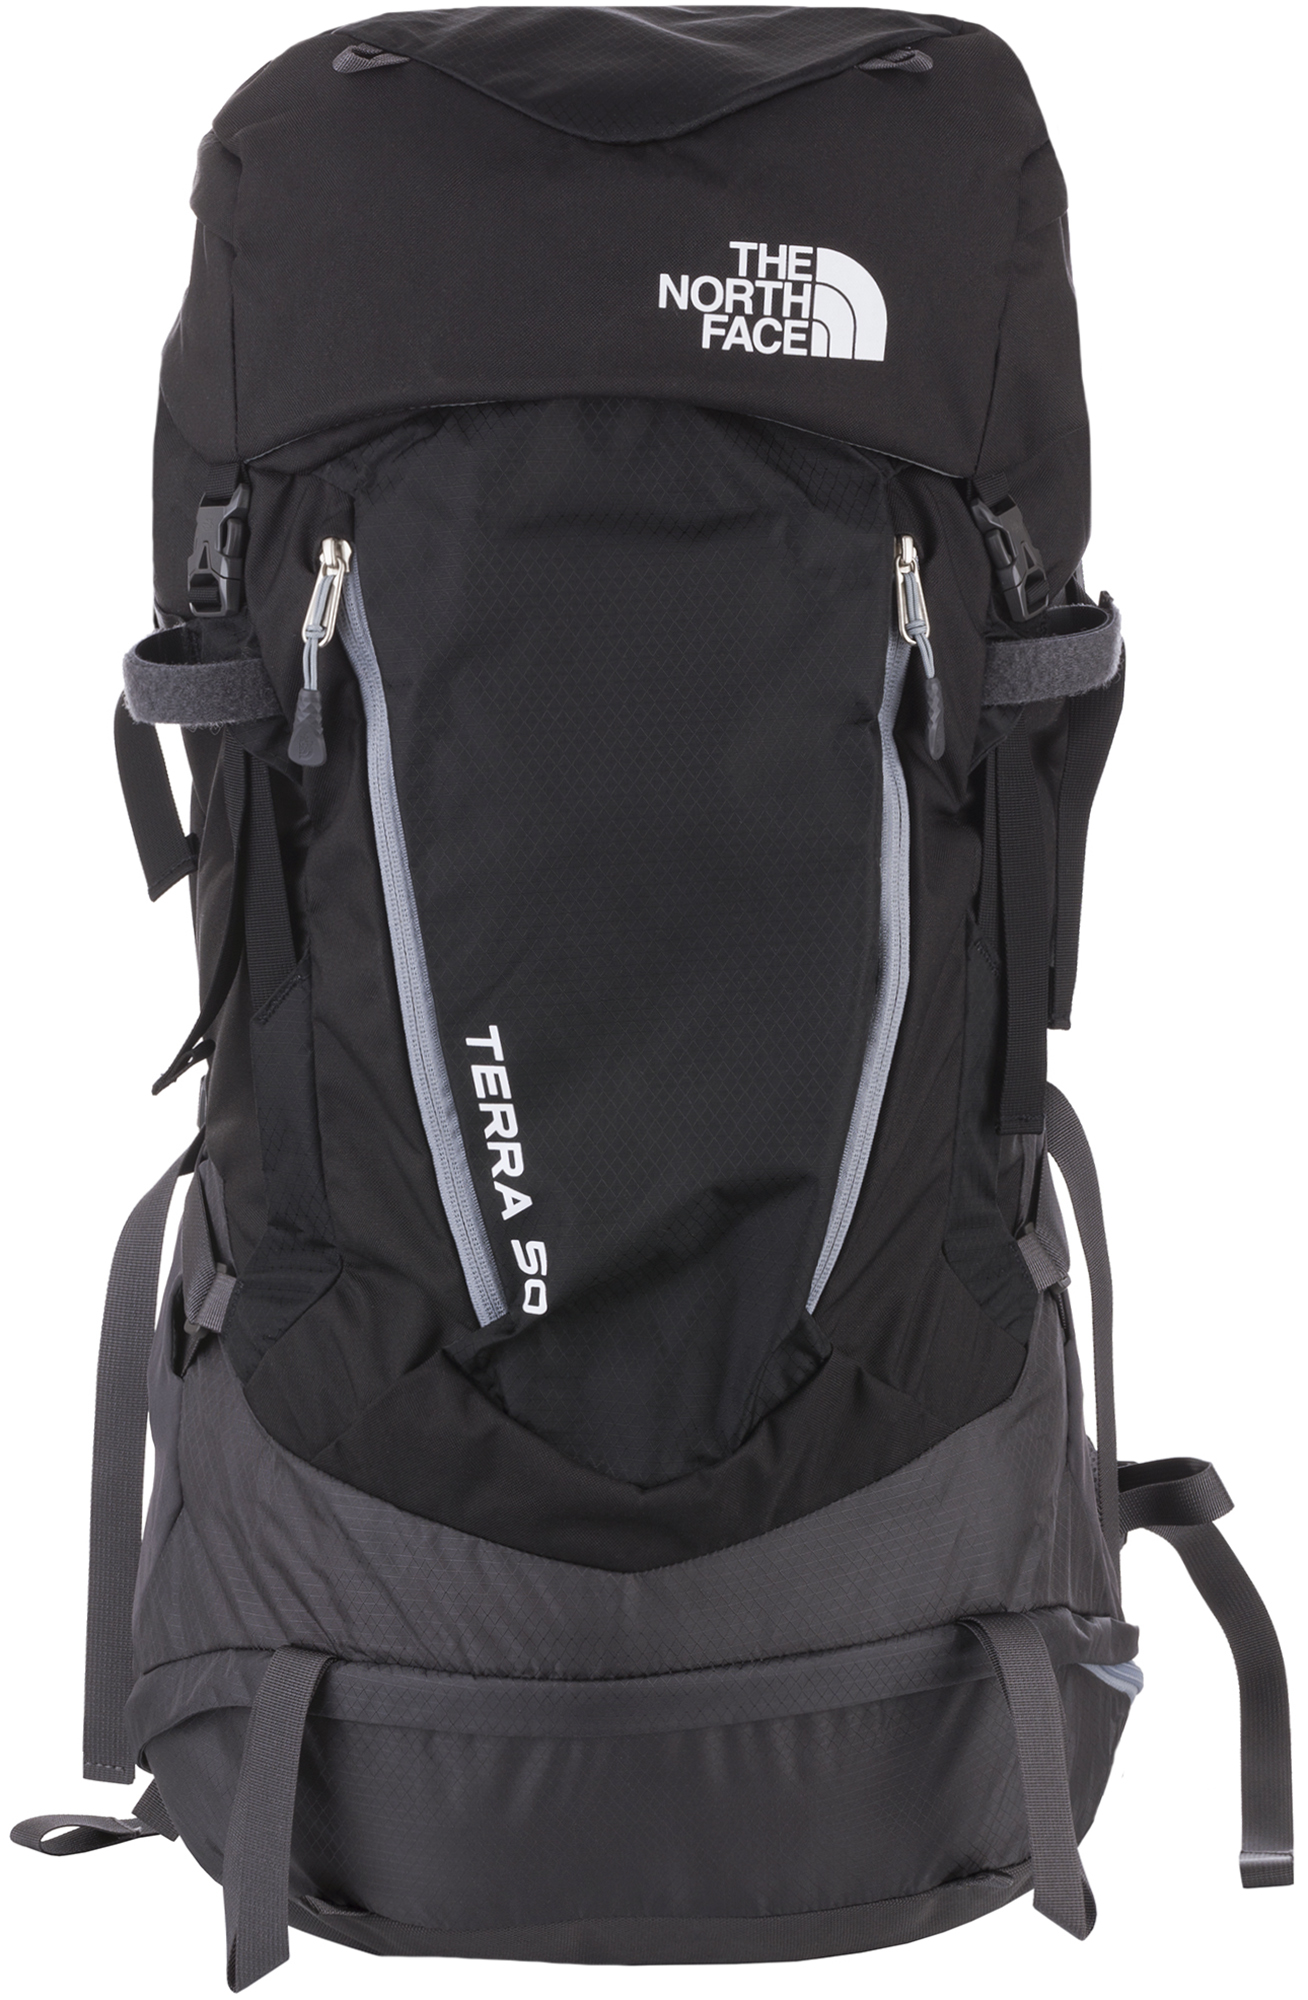 The North Face The North Face TERRA 50 the north face бермуды